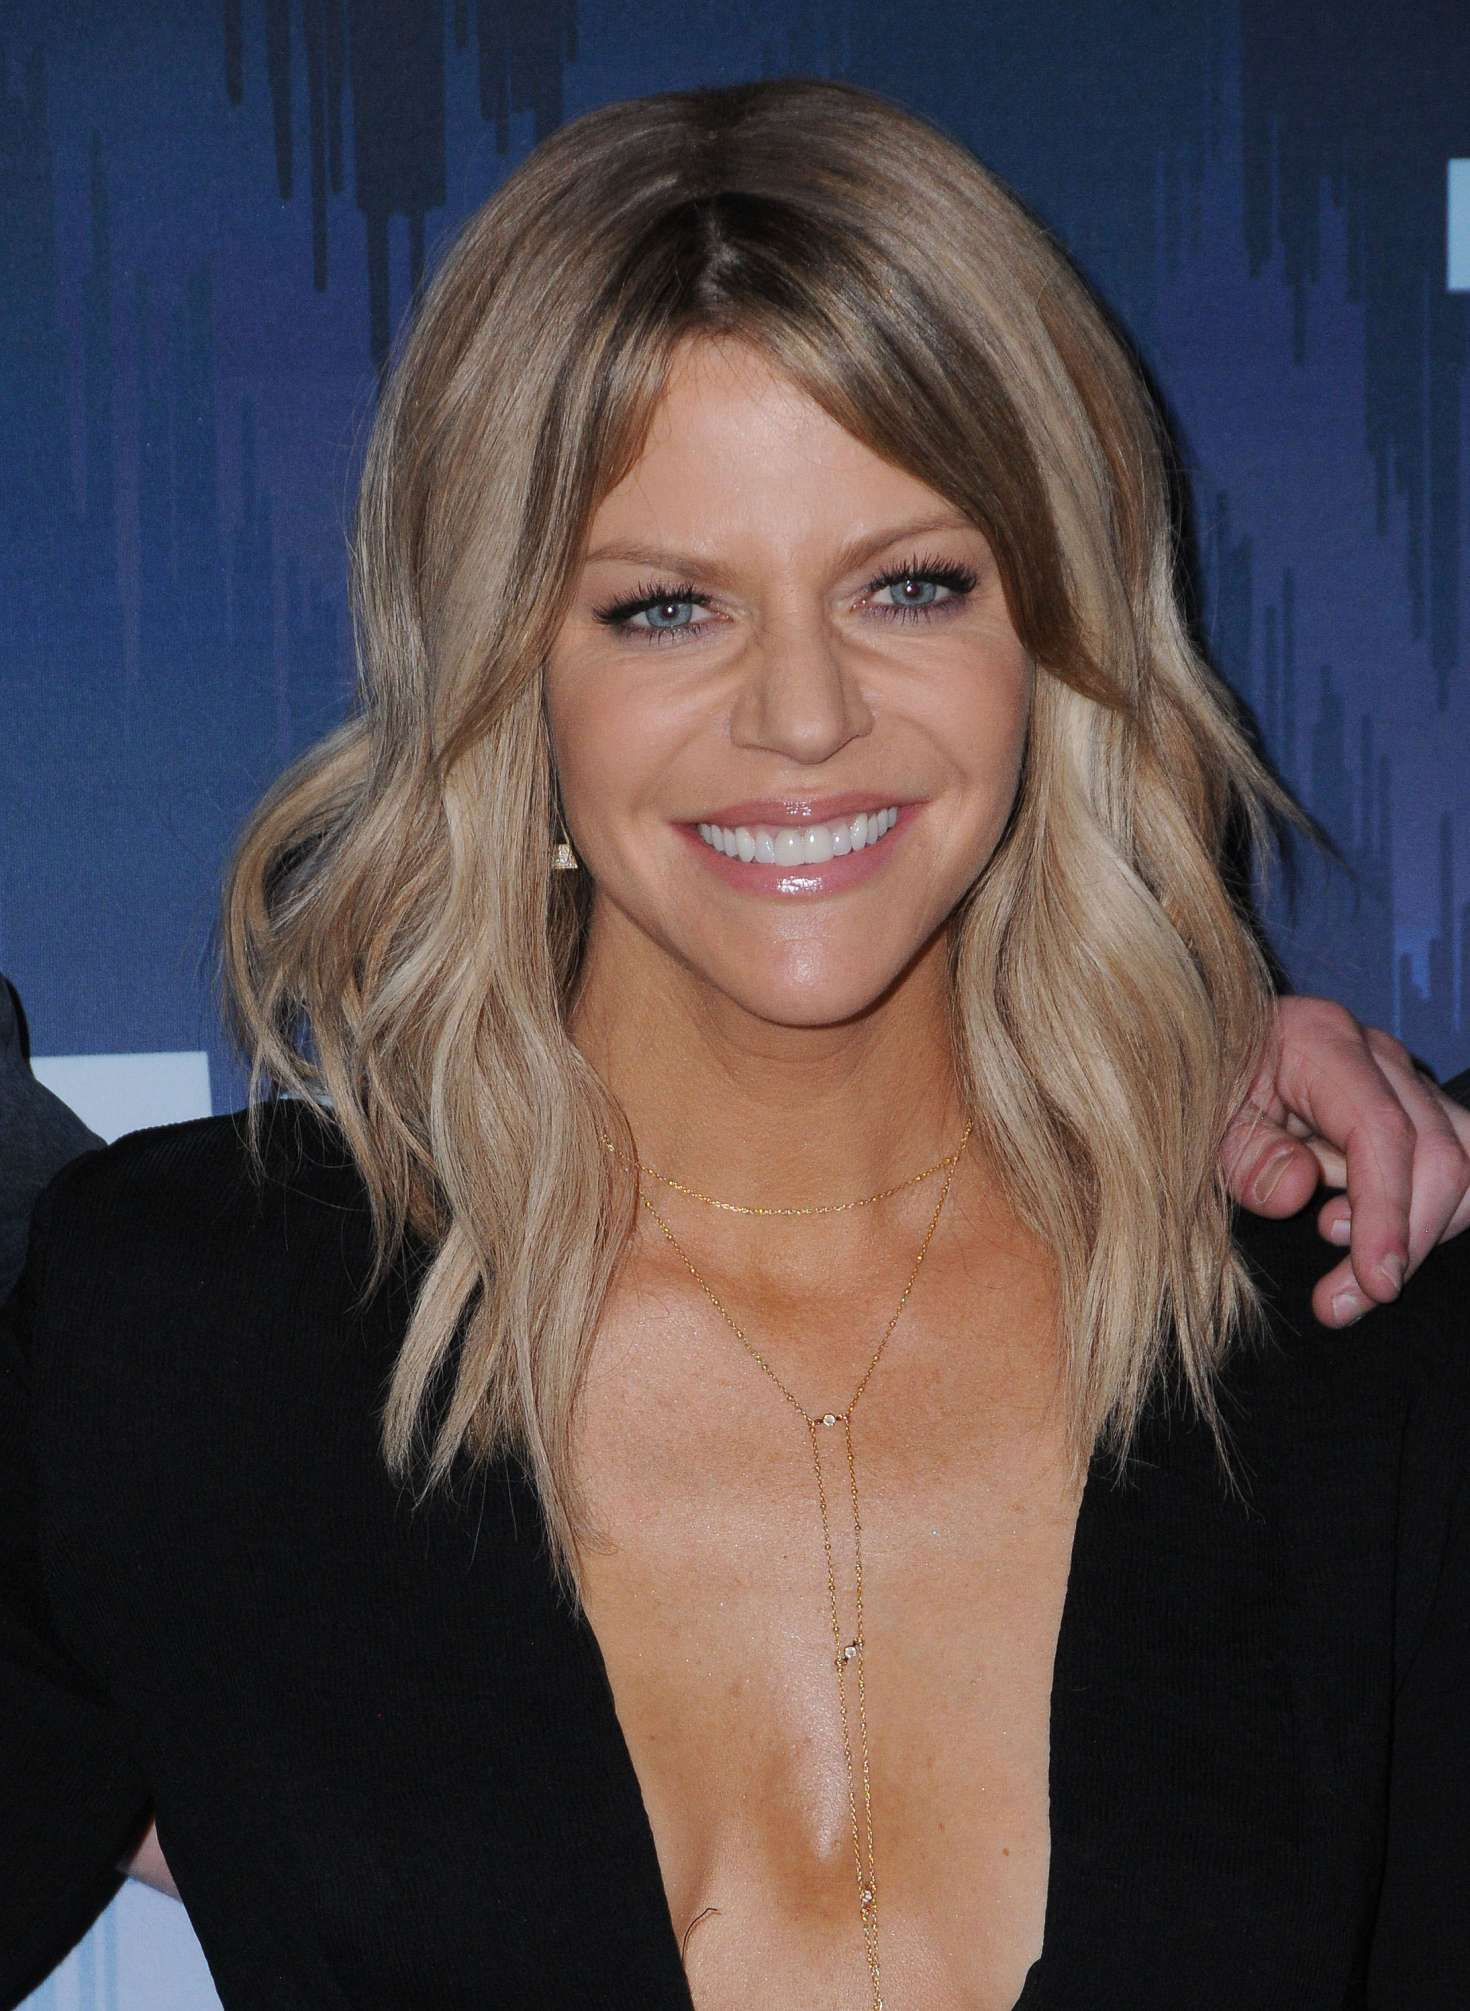 Kaitlin Olson naked (35 photo), foto Pussy, Instagram, lingerie 2019